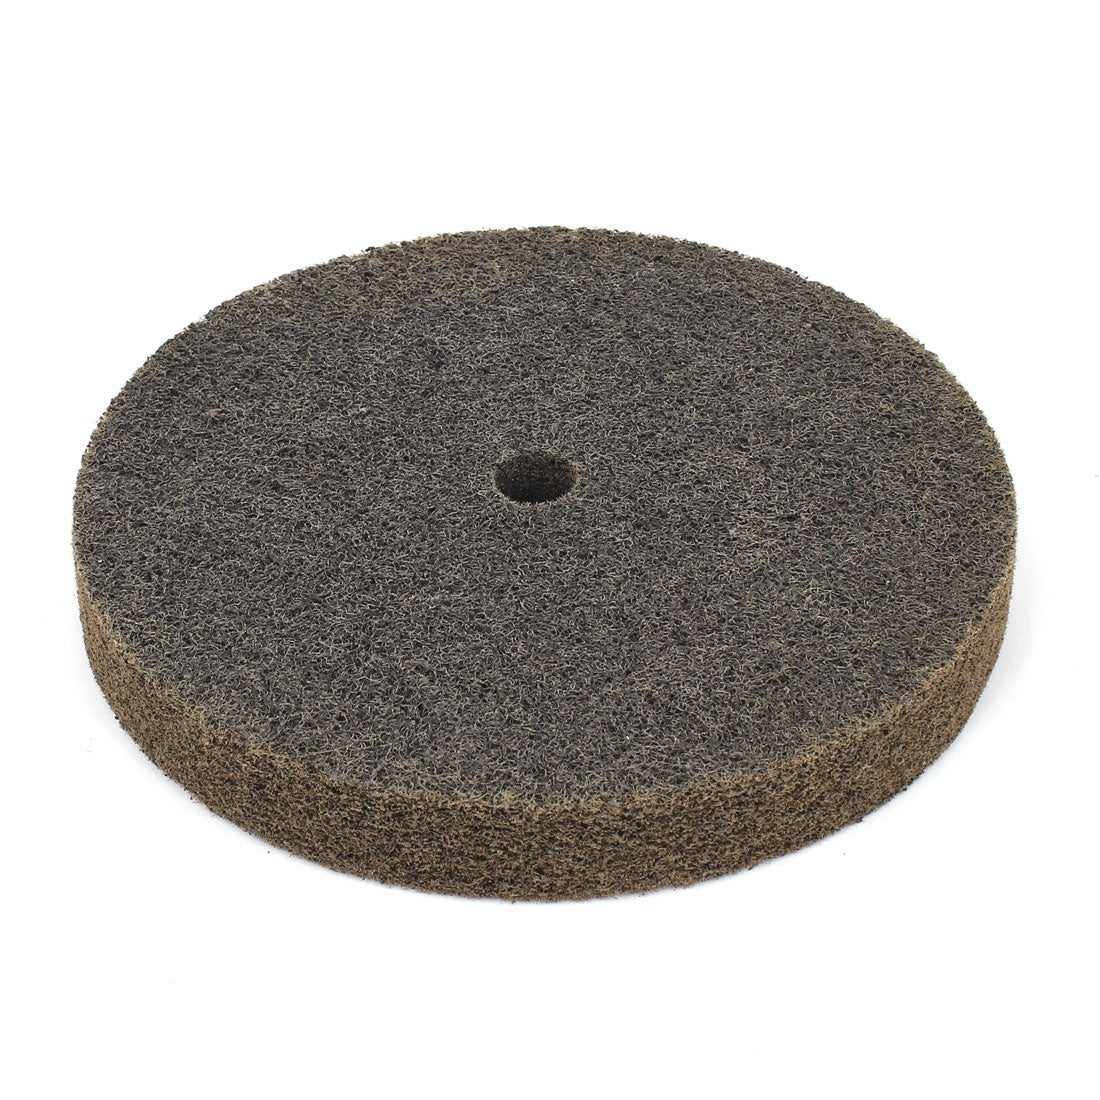 Unique Bargains Olive Green Nylon Fiber 60 Grit 8 x 1 Cylindrical Abrasives Grinding Wheel